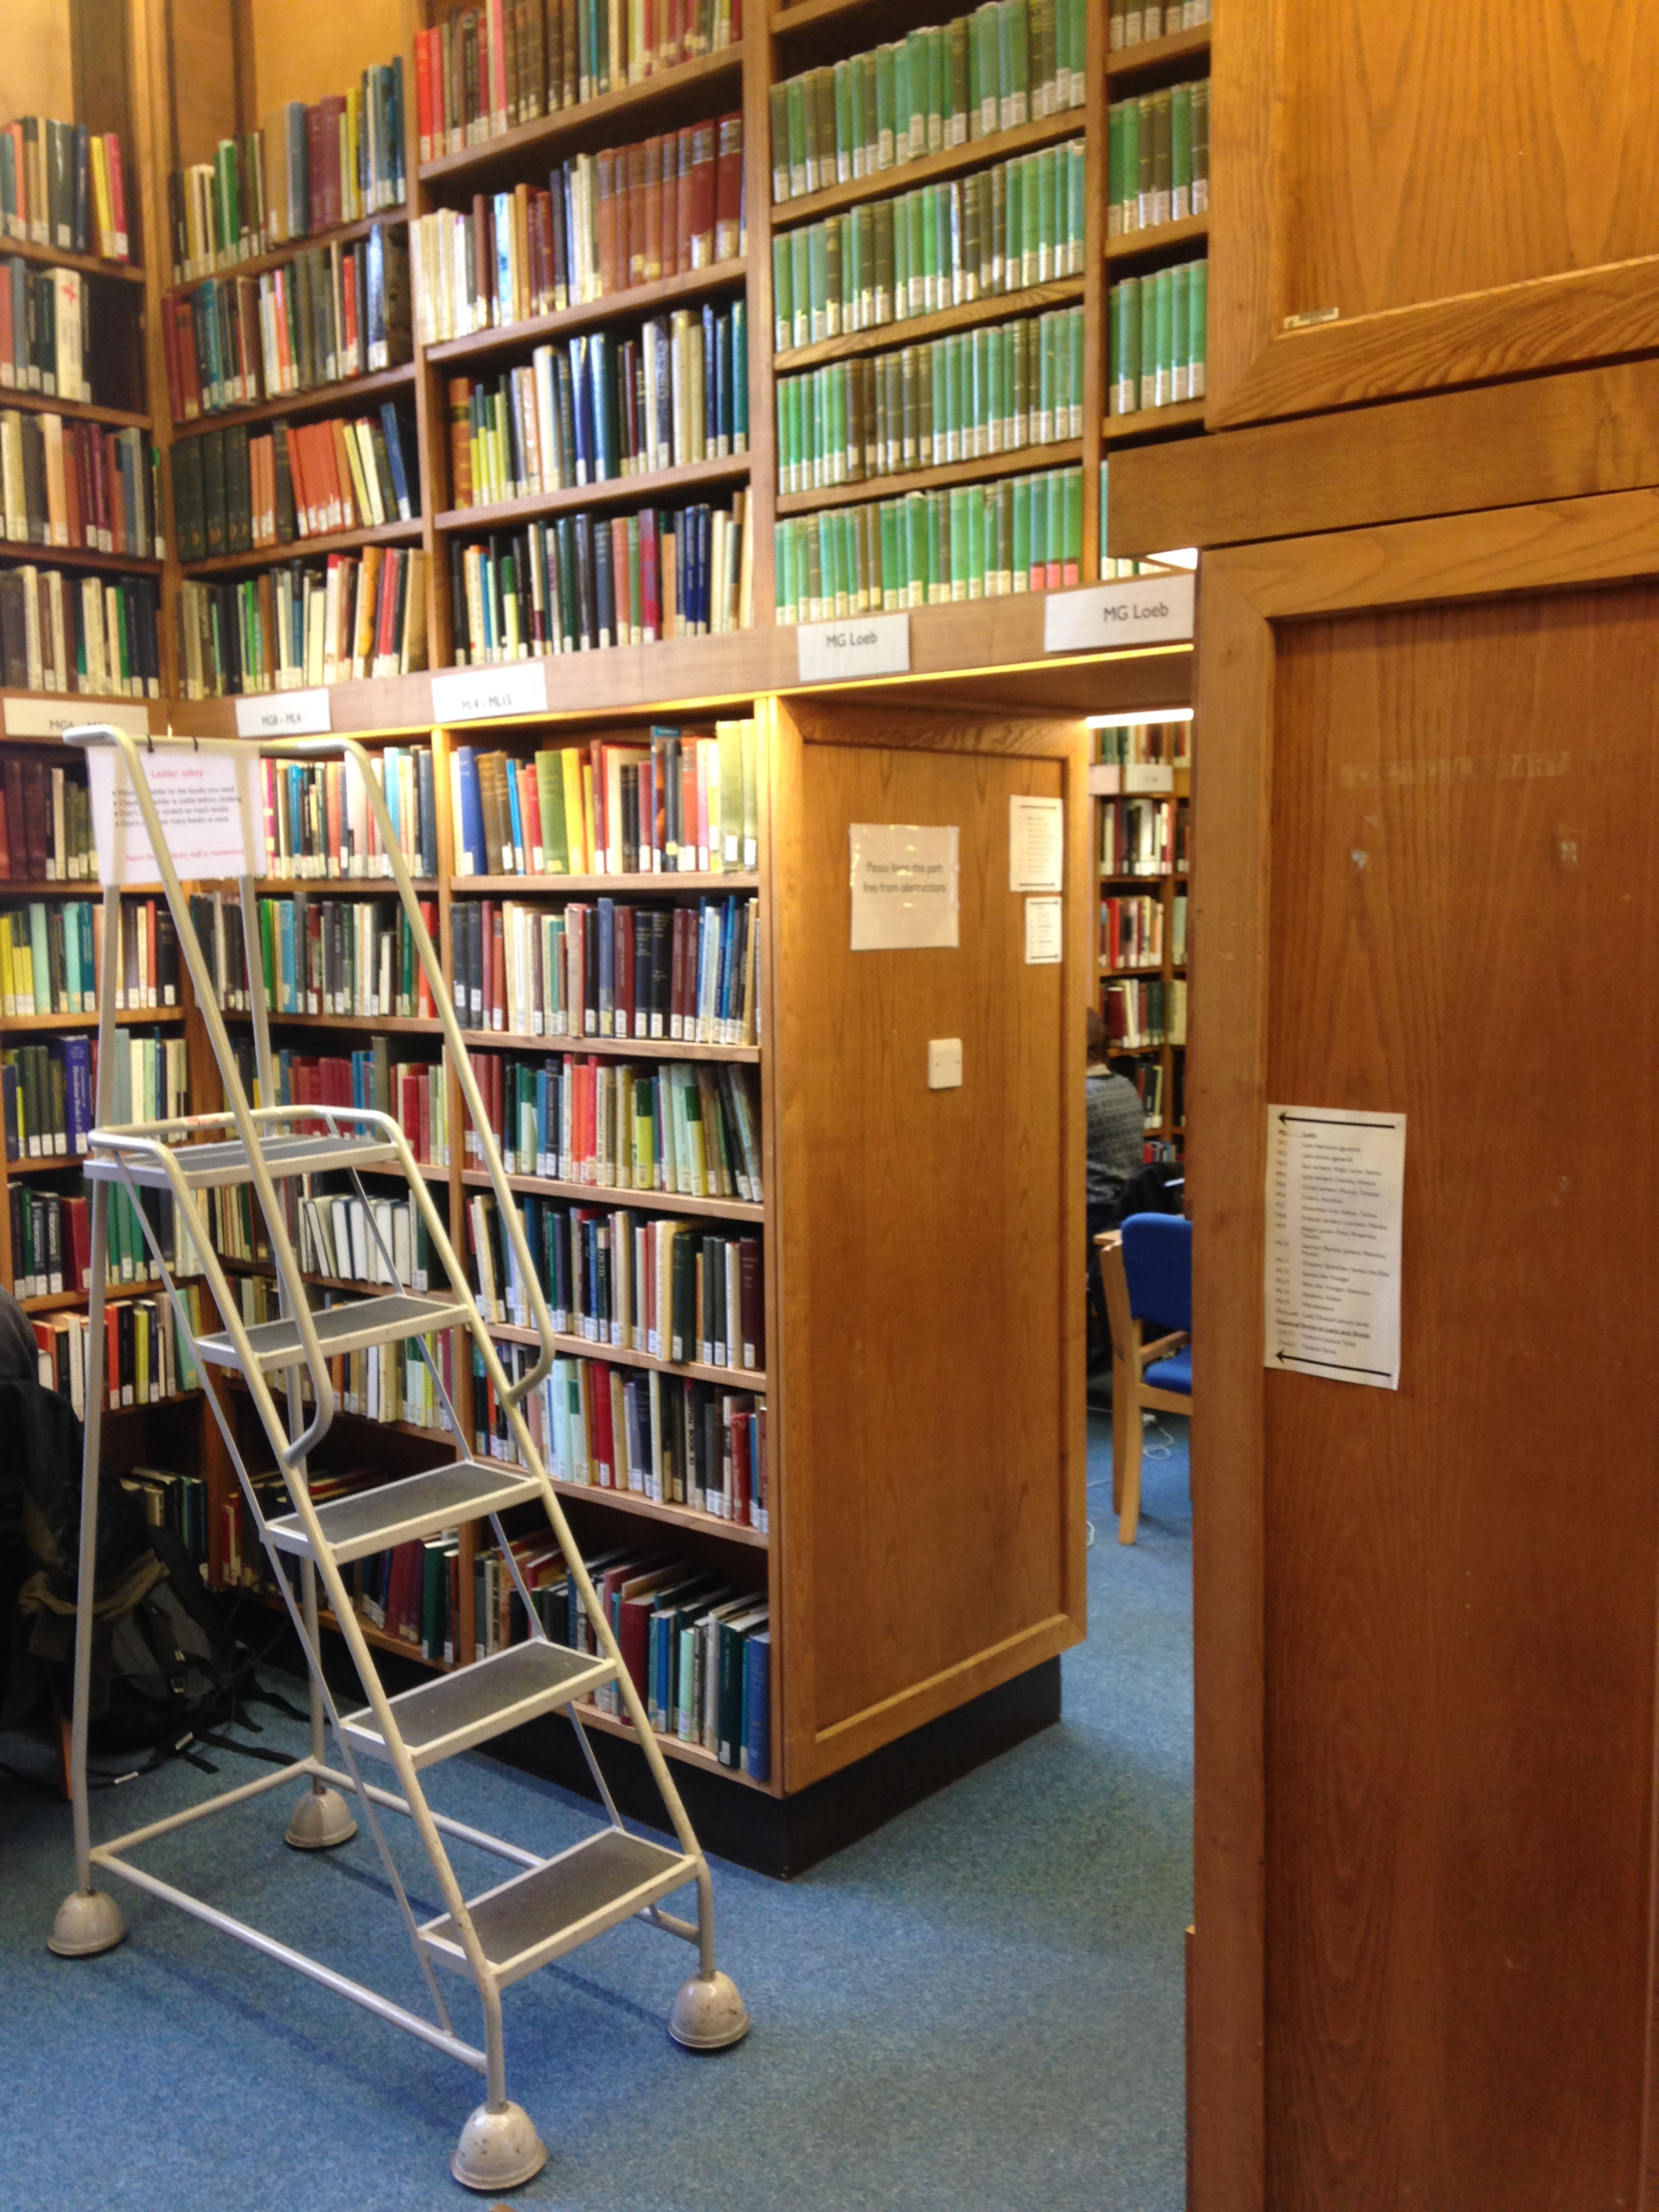 Book filled shelves in Jesus College Library